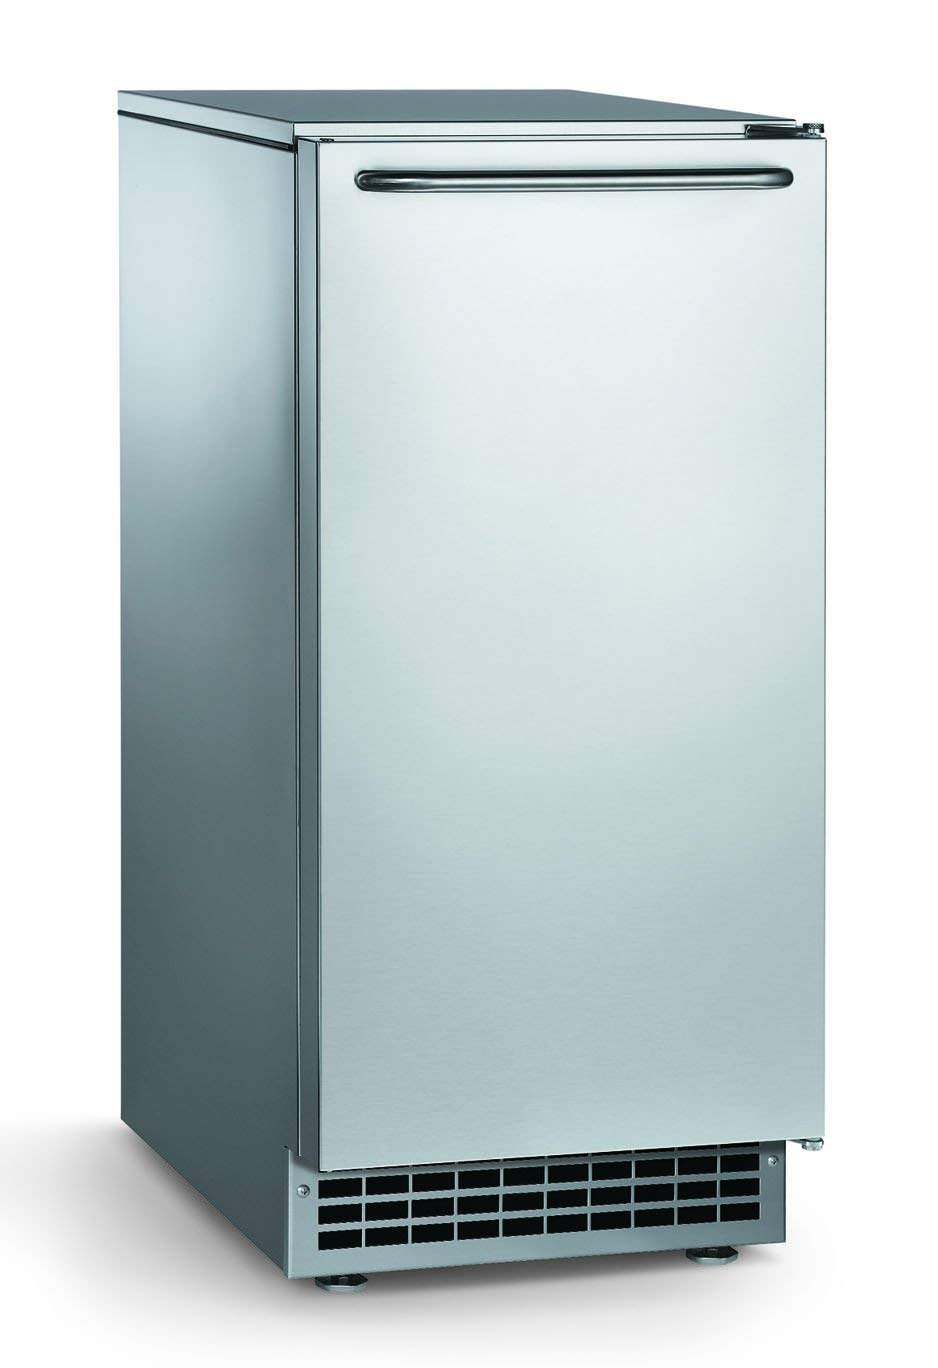 Ice-O-Matic GEMU090 Air Condensing Unit Pearl Self-Contained Ice Machine (With Pump)